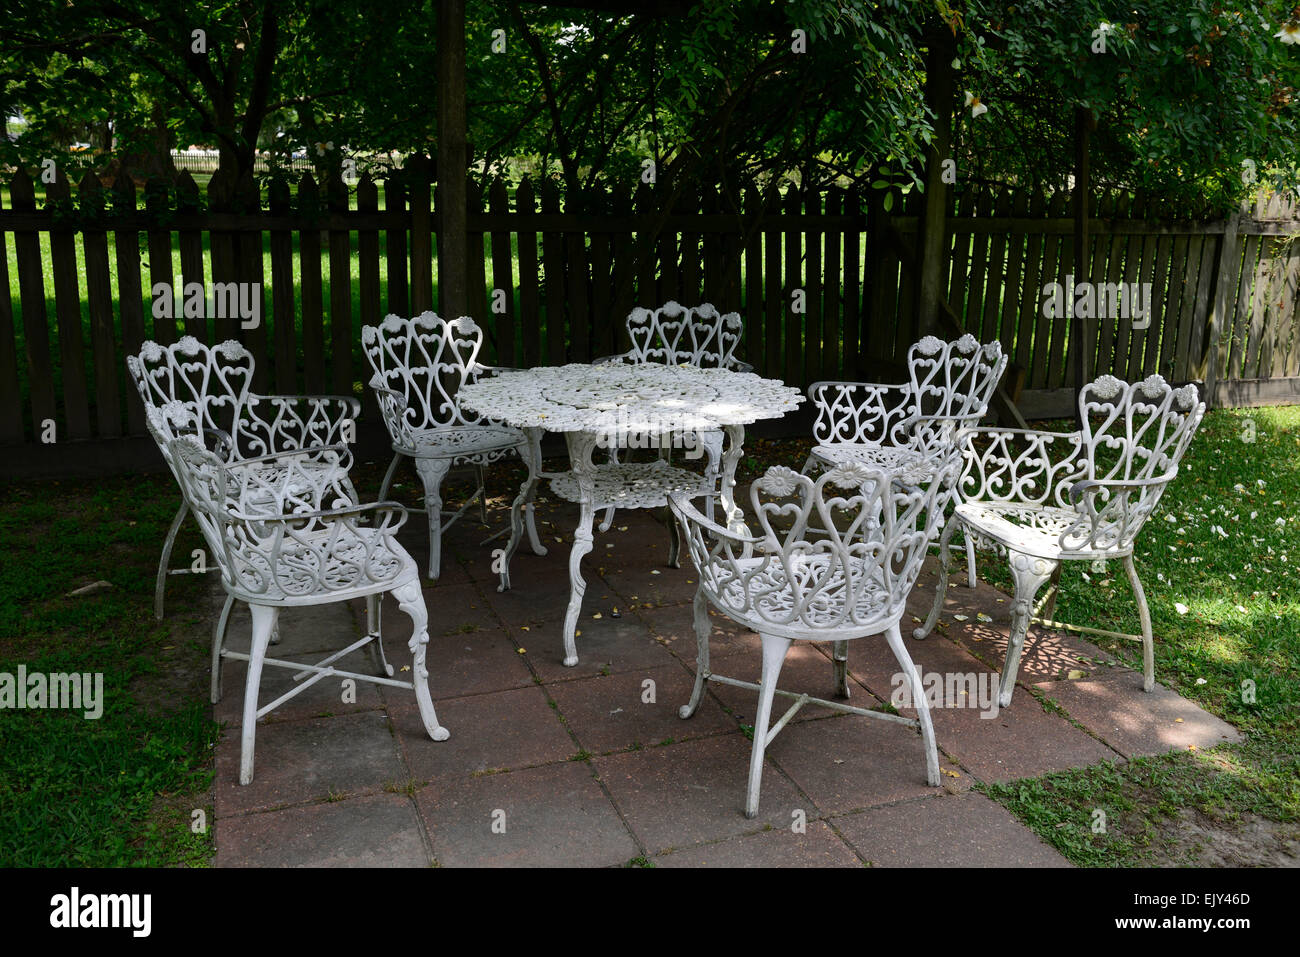 white wrought iron furniture. White Wrought Iron Metal Table Chairs Patio Furniture Shade Shaded Sheltered Garden Gardening RM Floral 2